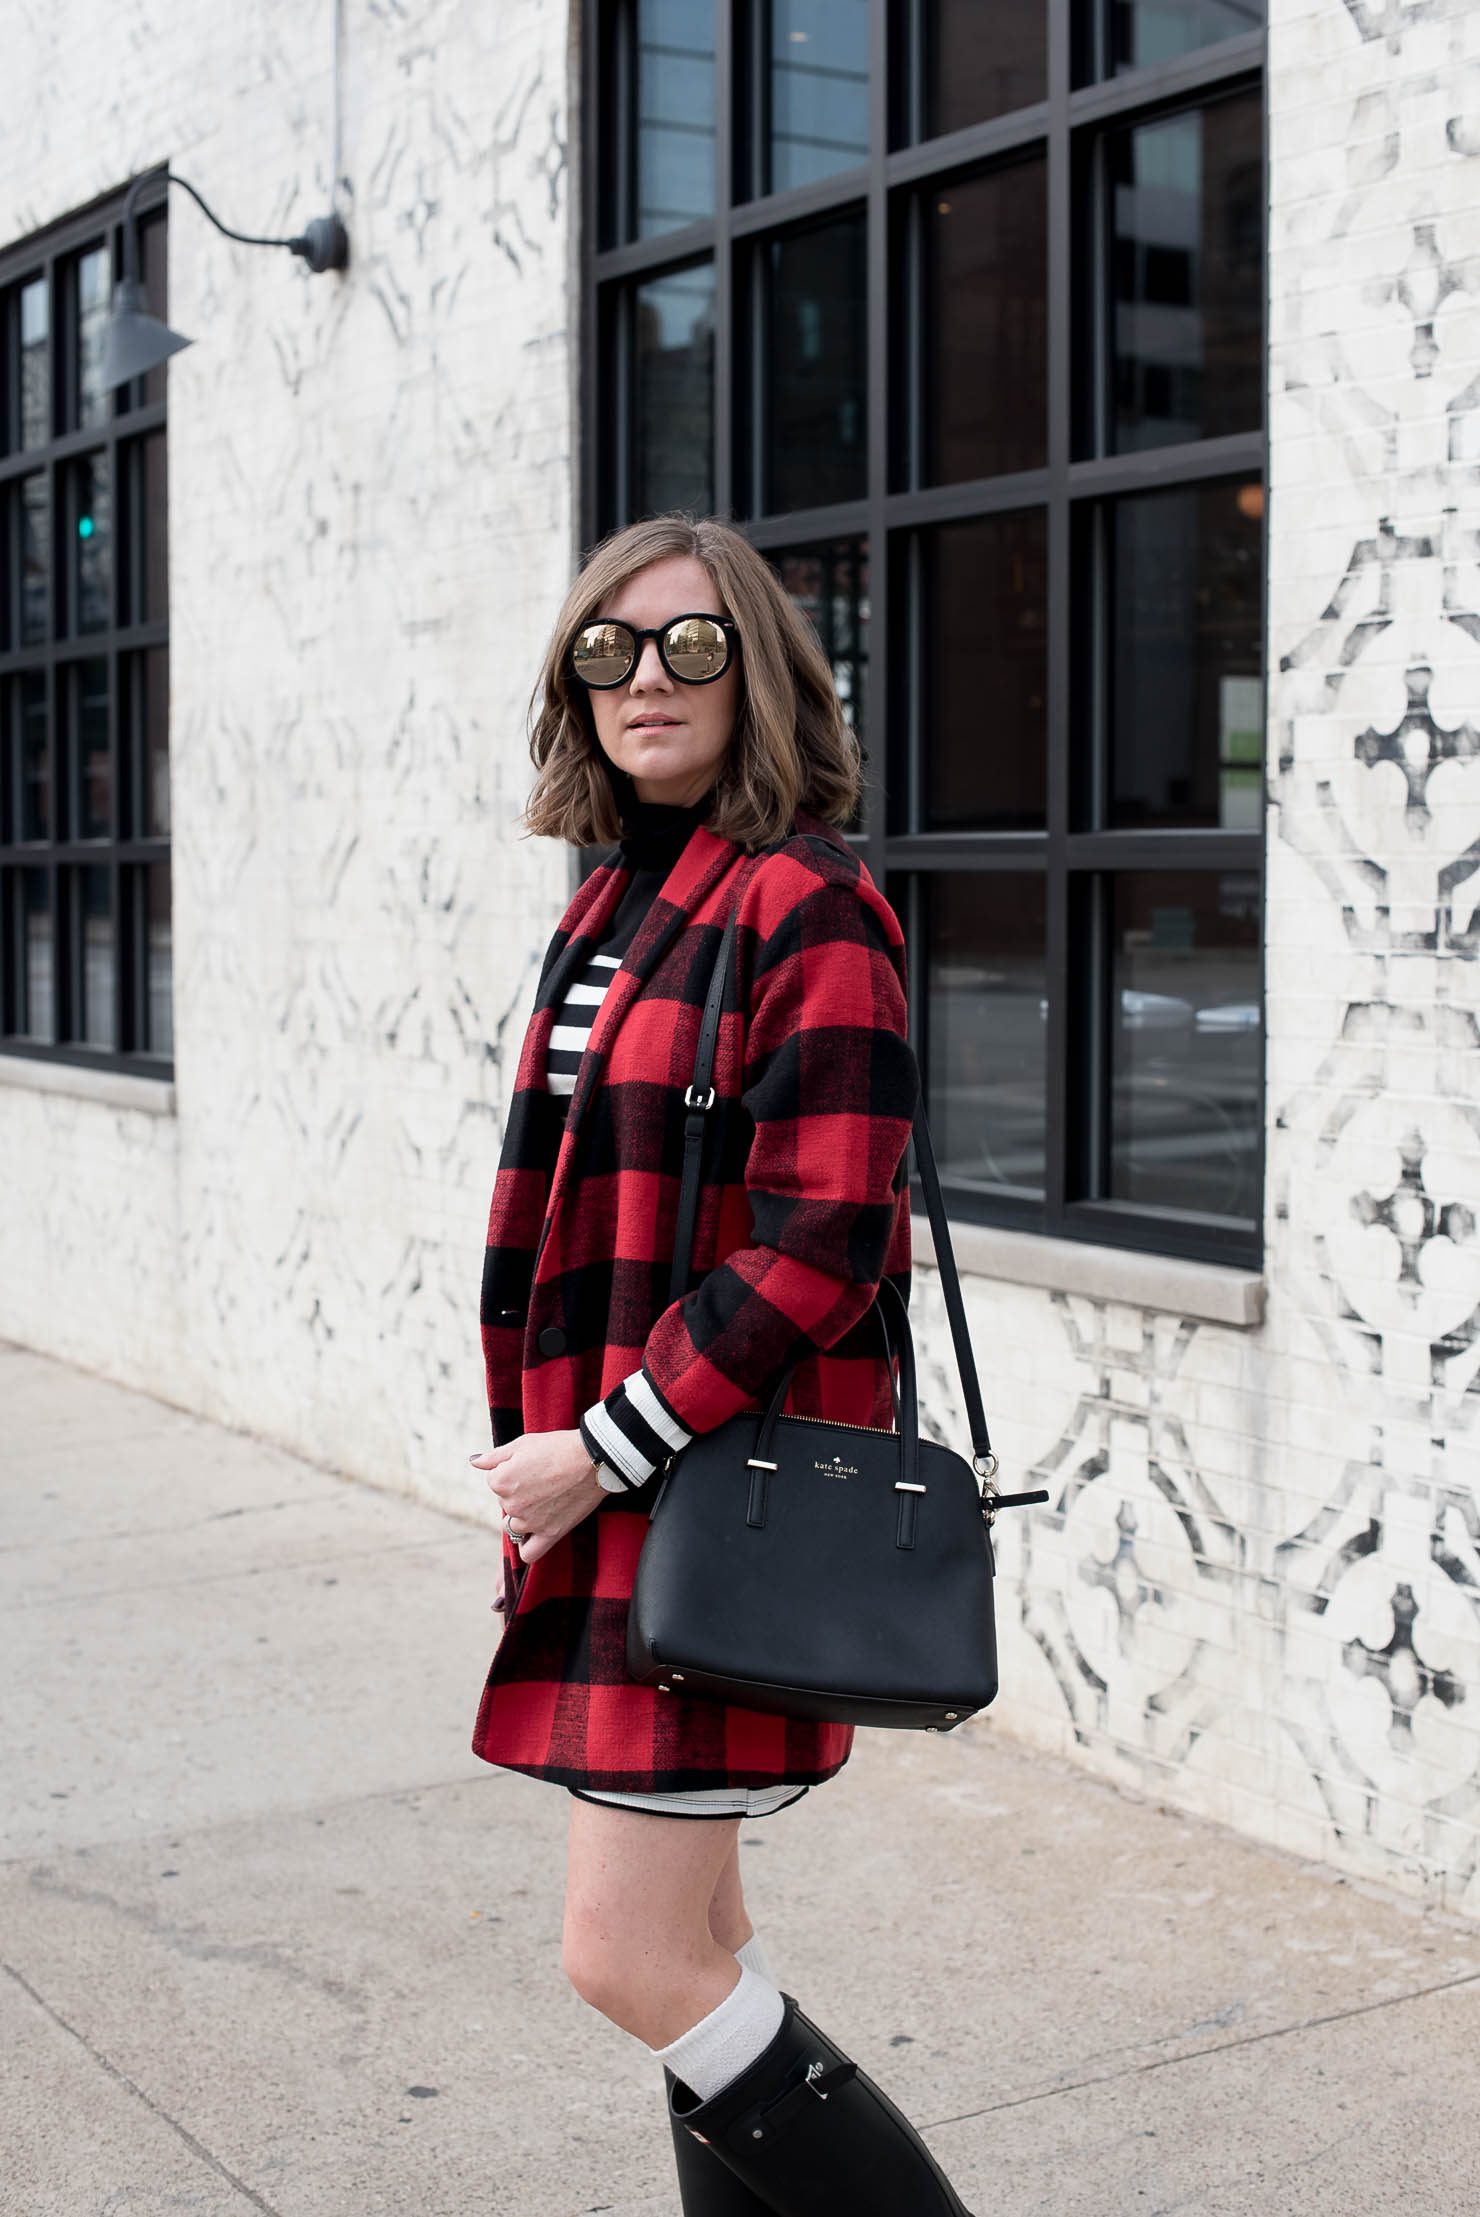 Black And White Striped Mini Dress And Red Buffalo Plaid Coat With